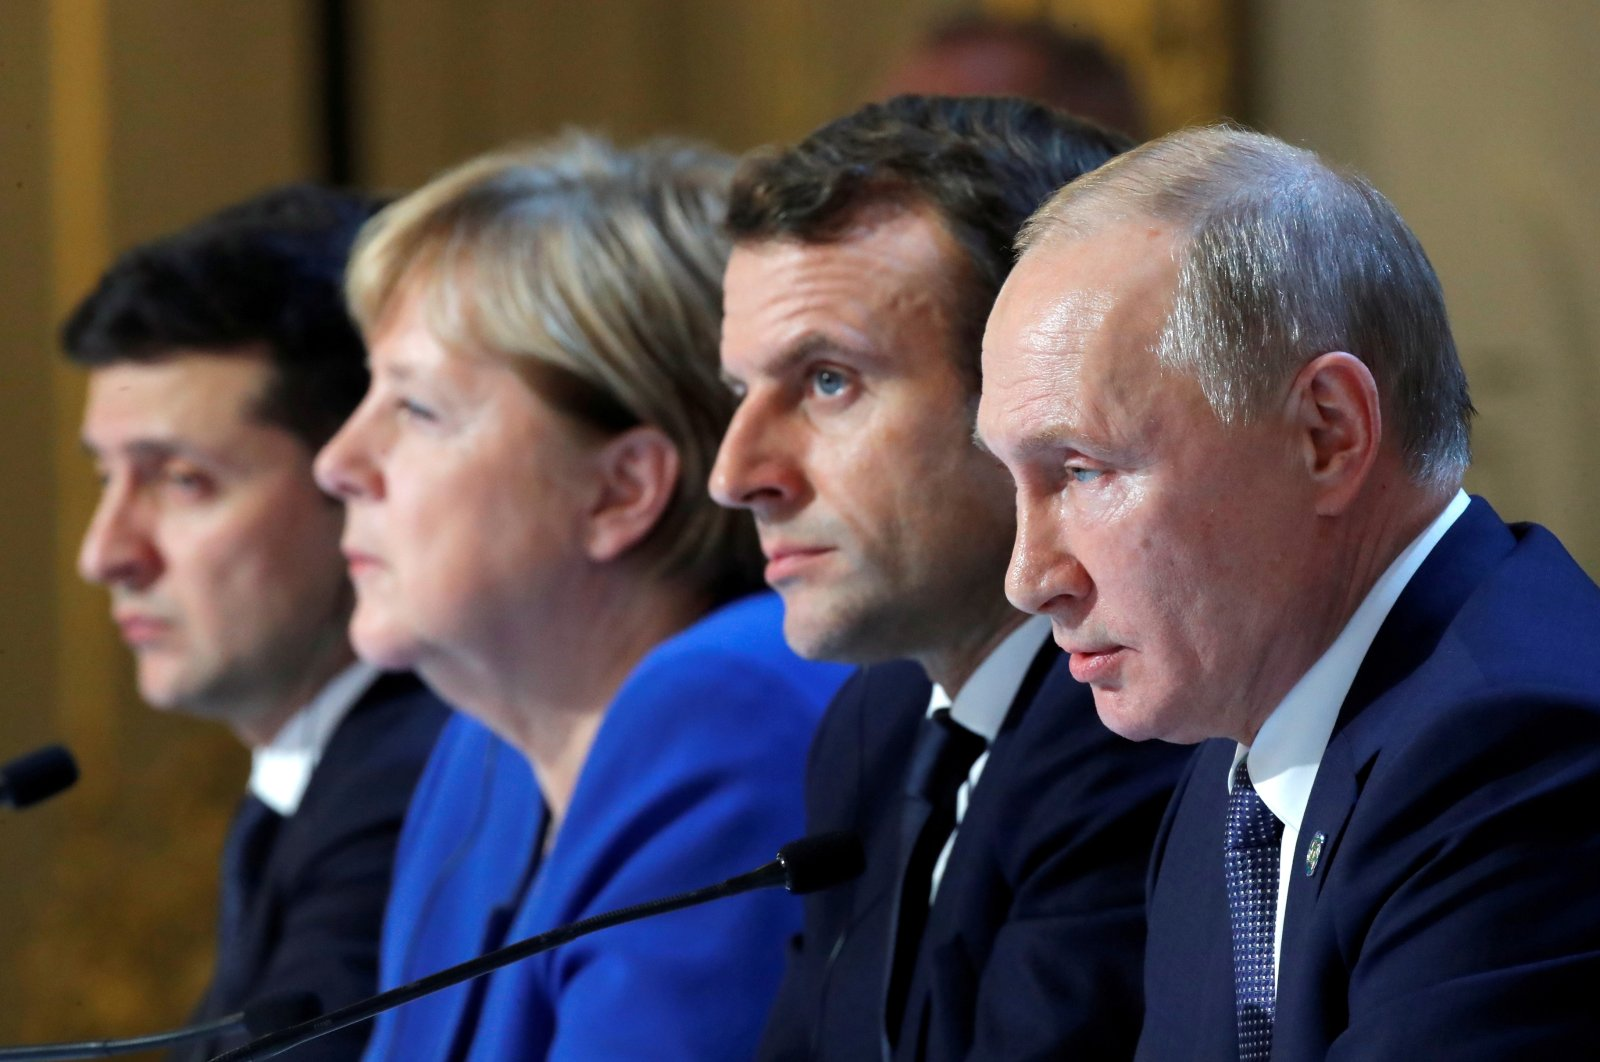 From left to right, Ukraine's President Volodymyr Zelenskyy, German Chancellor Angela Merkel, French President Emmanuel Macron and Russia's President Vladimir Putin attend a joint news conference after a Normandy-format summit in Paris, France, Dec. 9, 2019. (Reuters Photo)